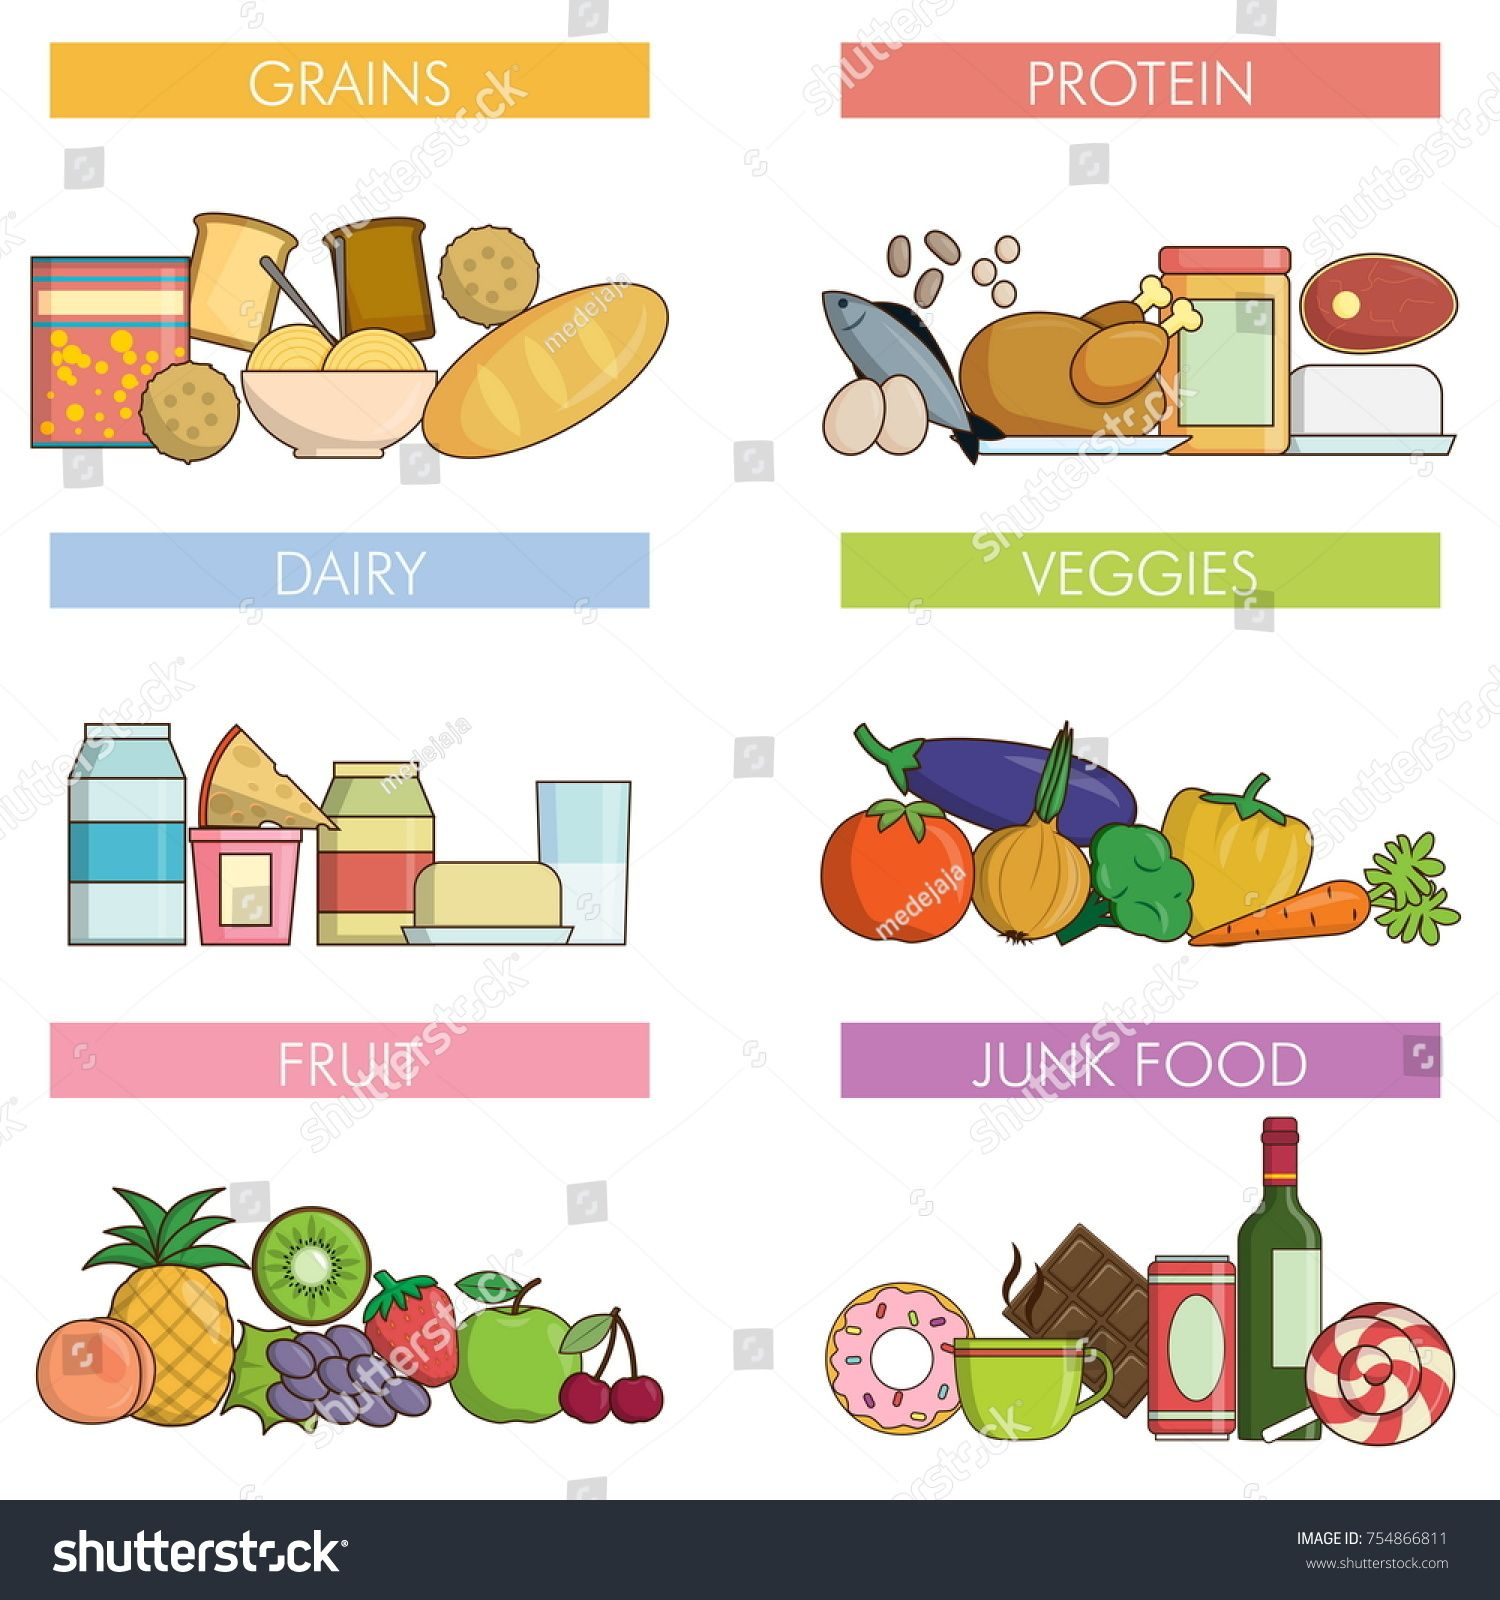 Food and drink nutrition groups, protein, grains, dairy.